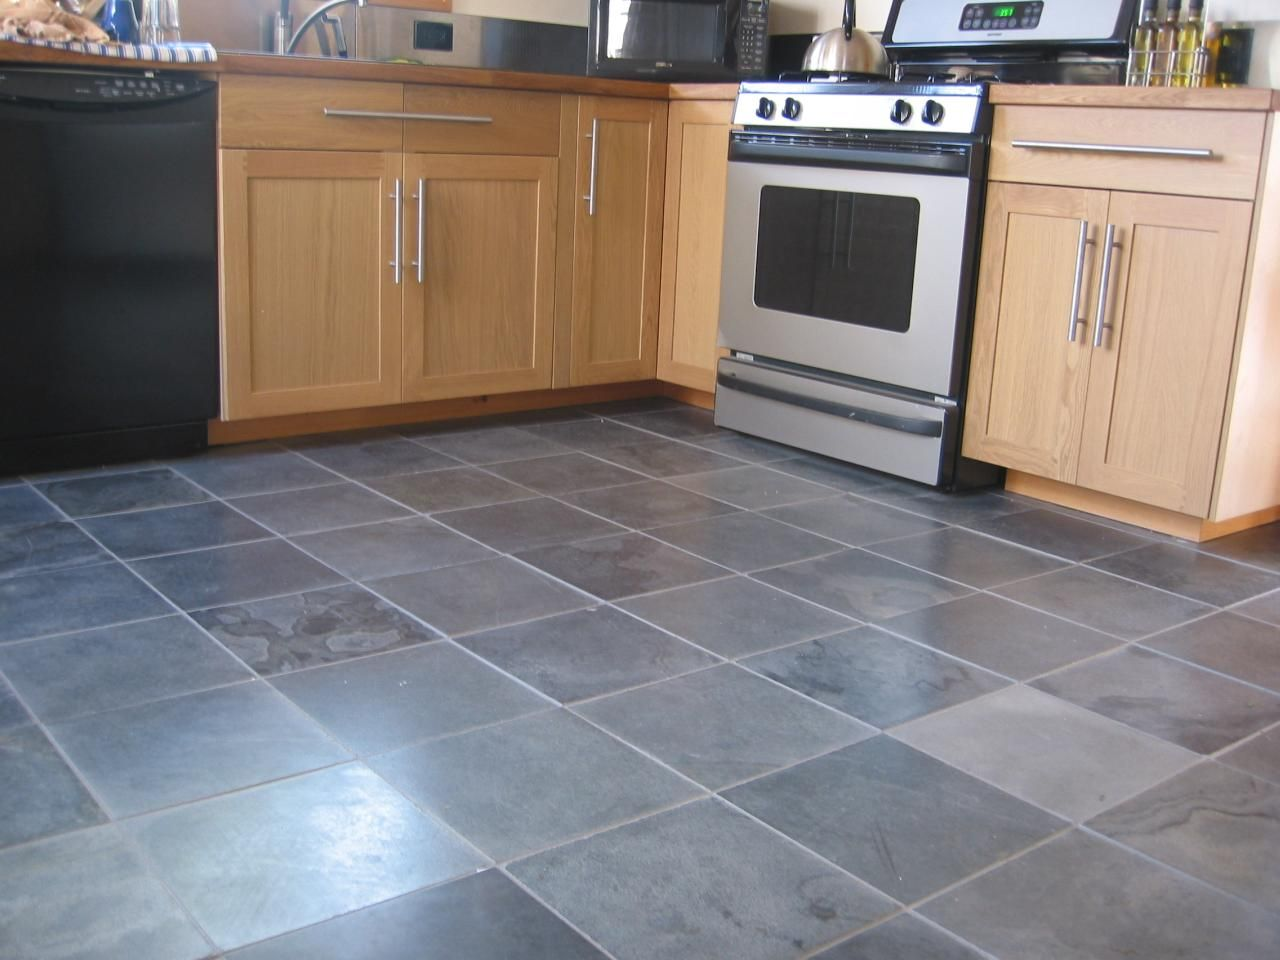 Ceramic Tile Kitchen Floor This Gray Tile Flooring Will Be In My Ensuite Bathroom I Cant